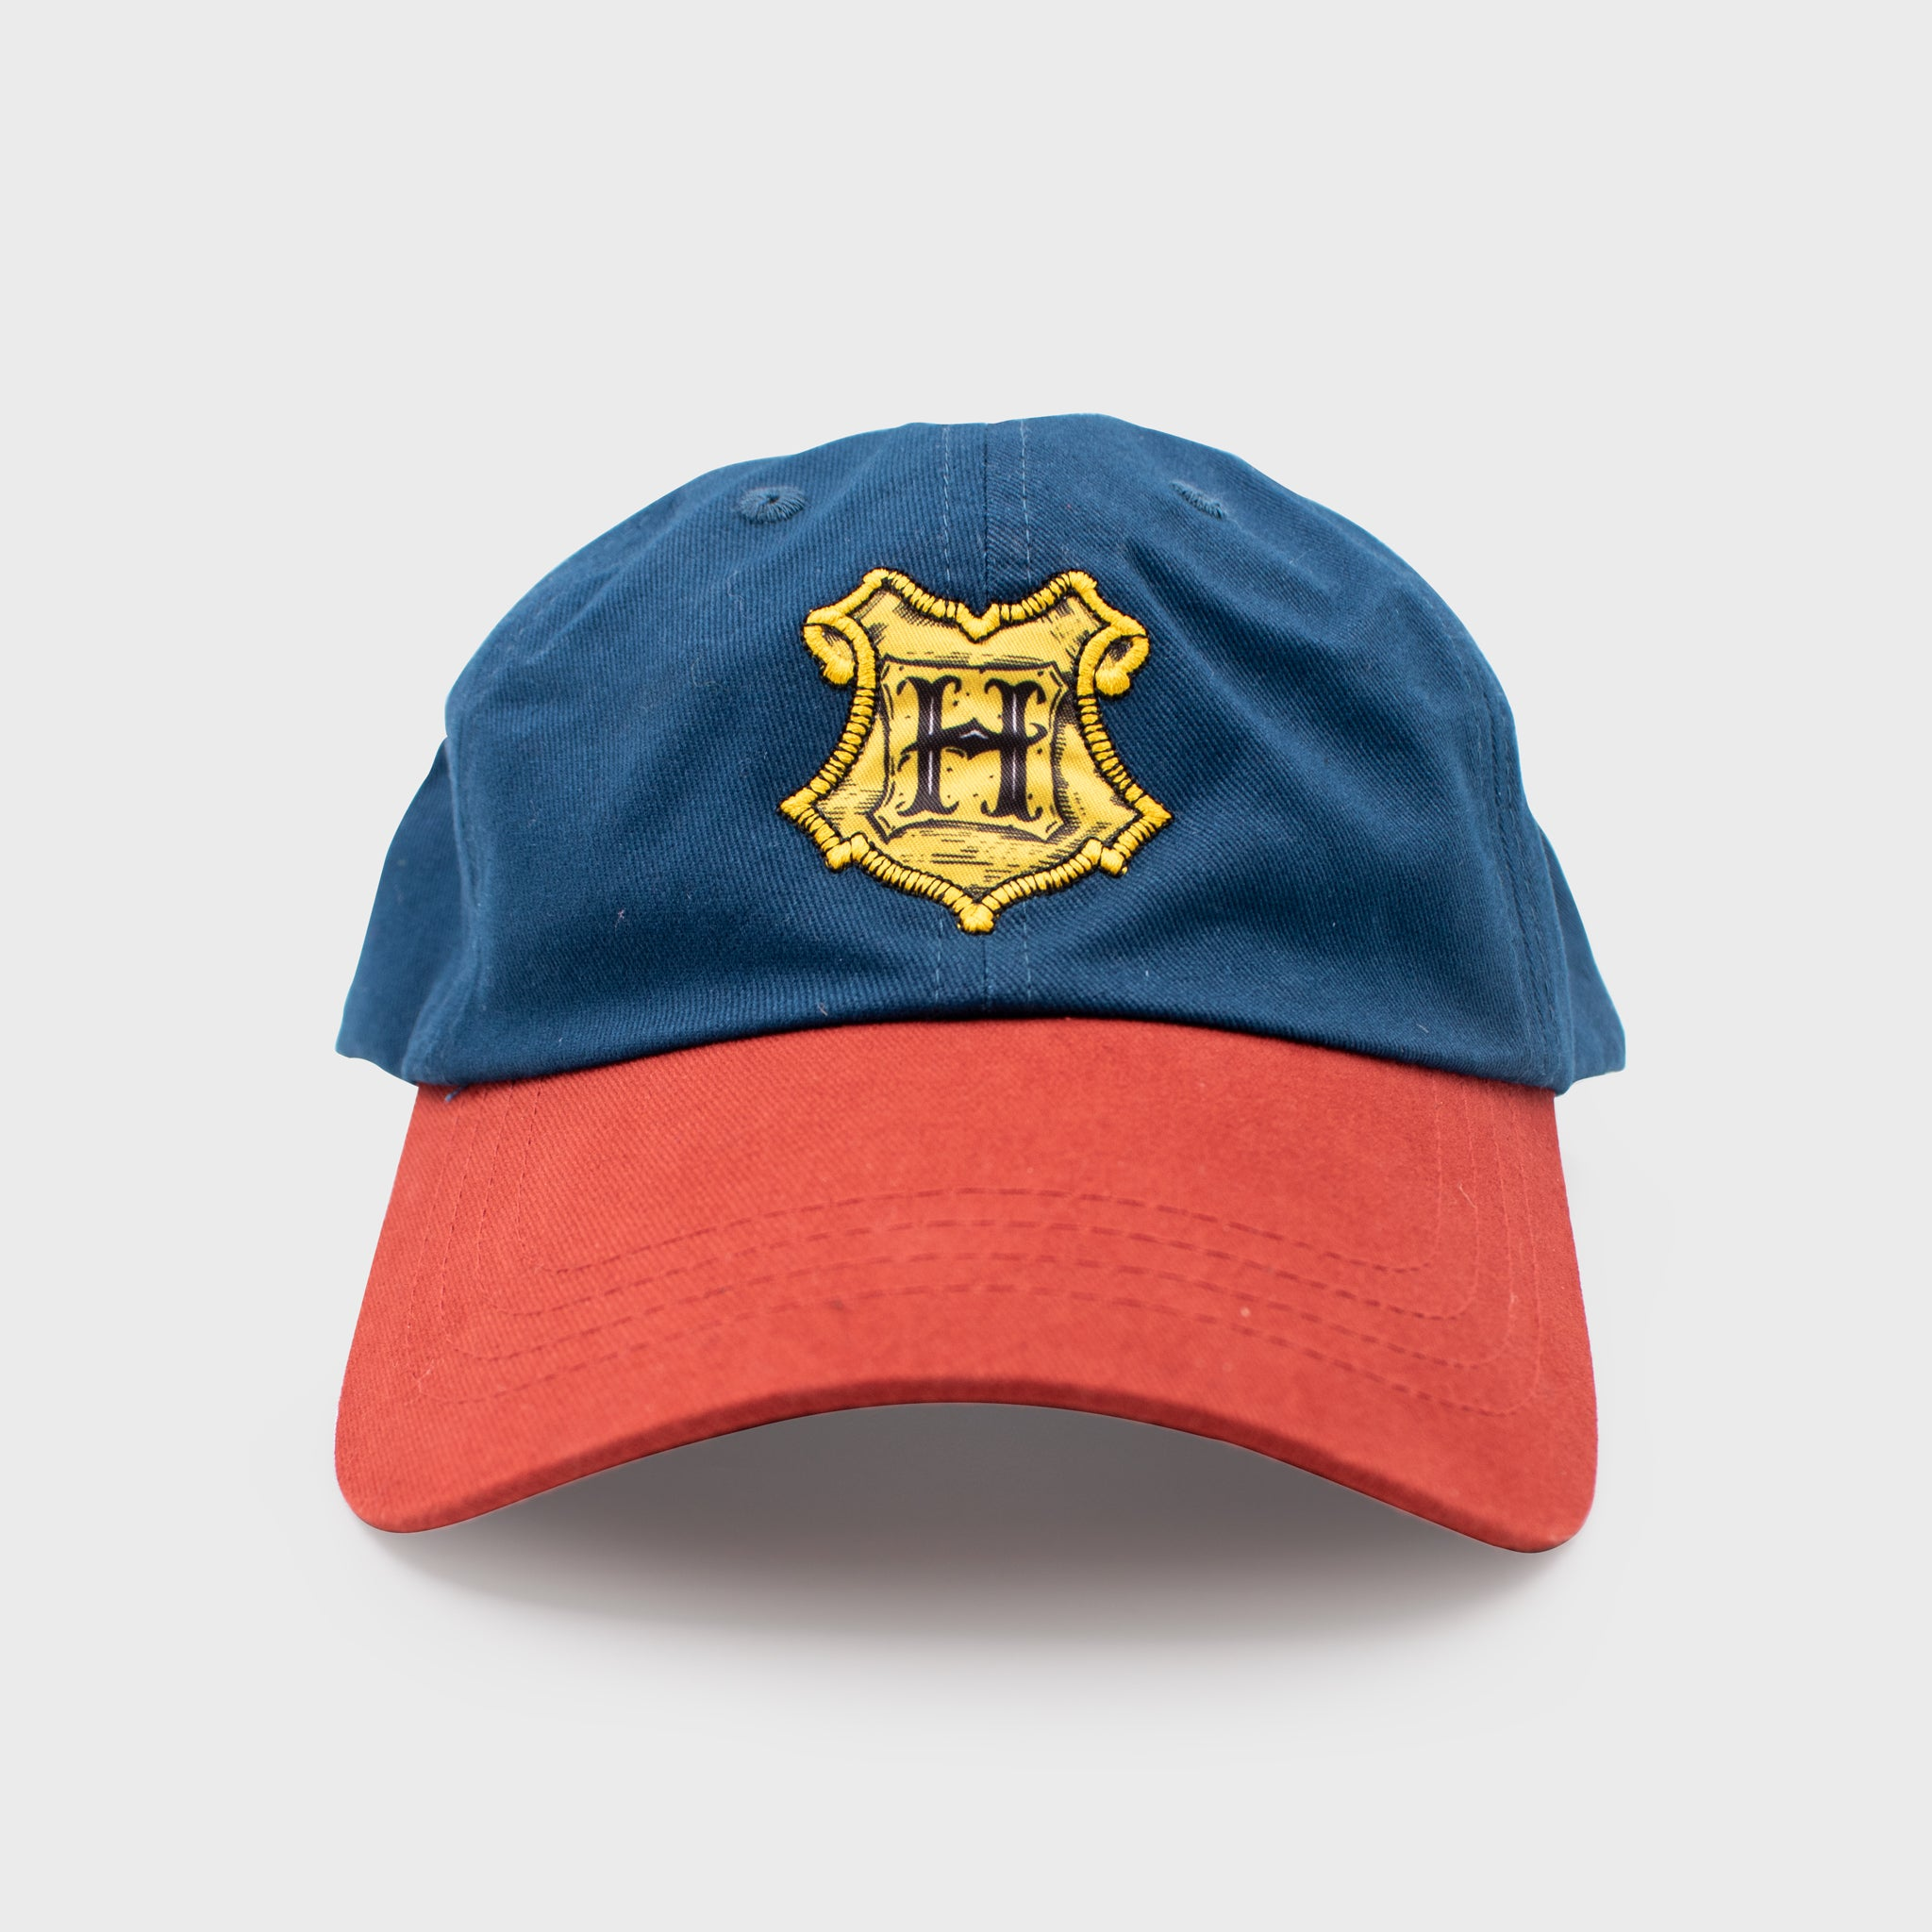 harry potter jk rowling wizarding world collectors box hat accessory headwear dad cap baseball cap collectible exclusives hogwarts culturefly